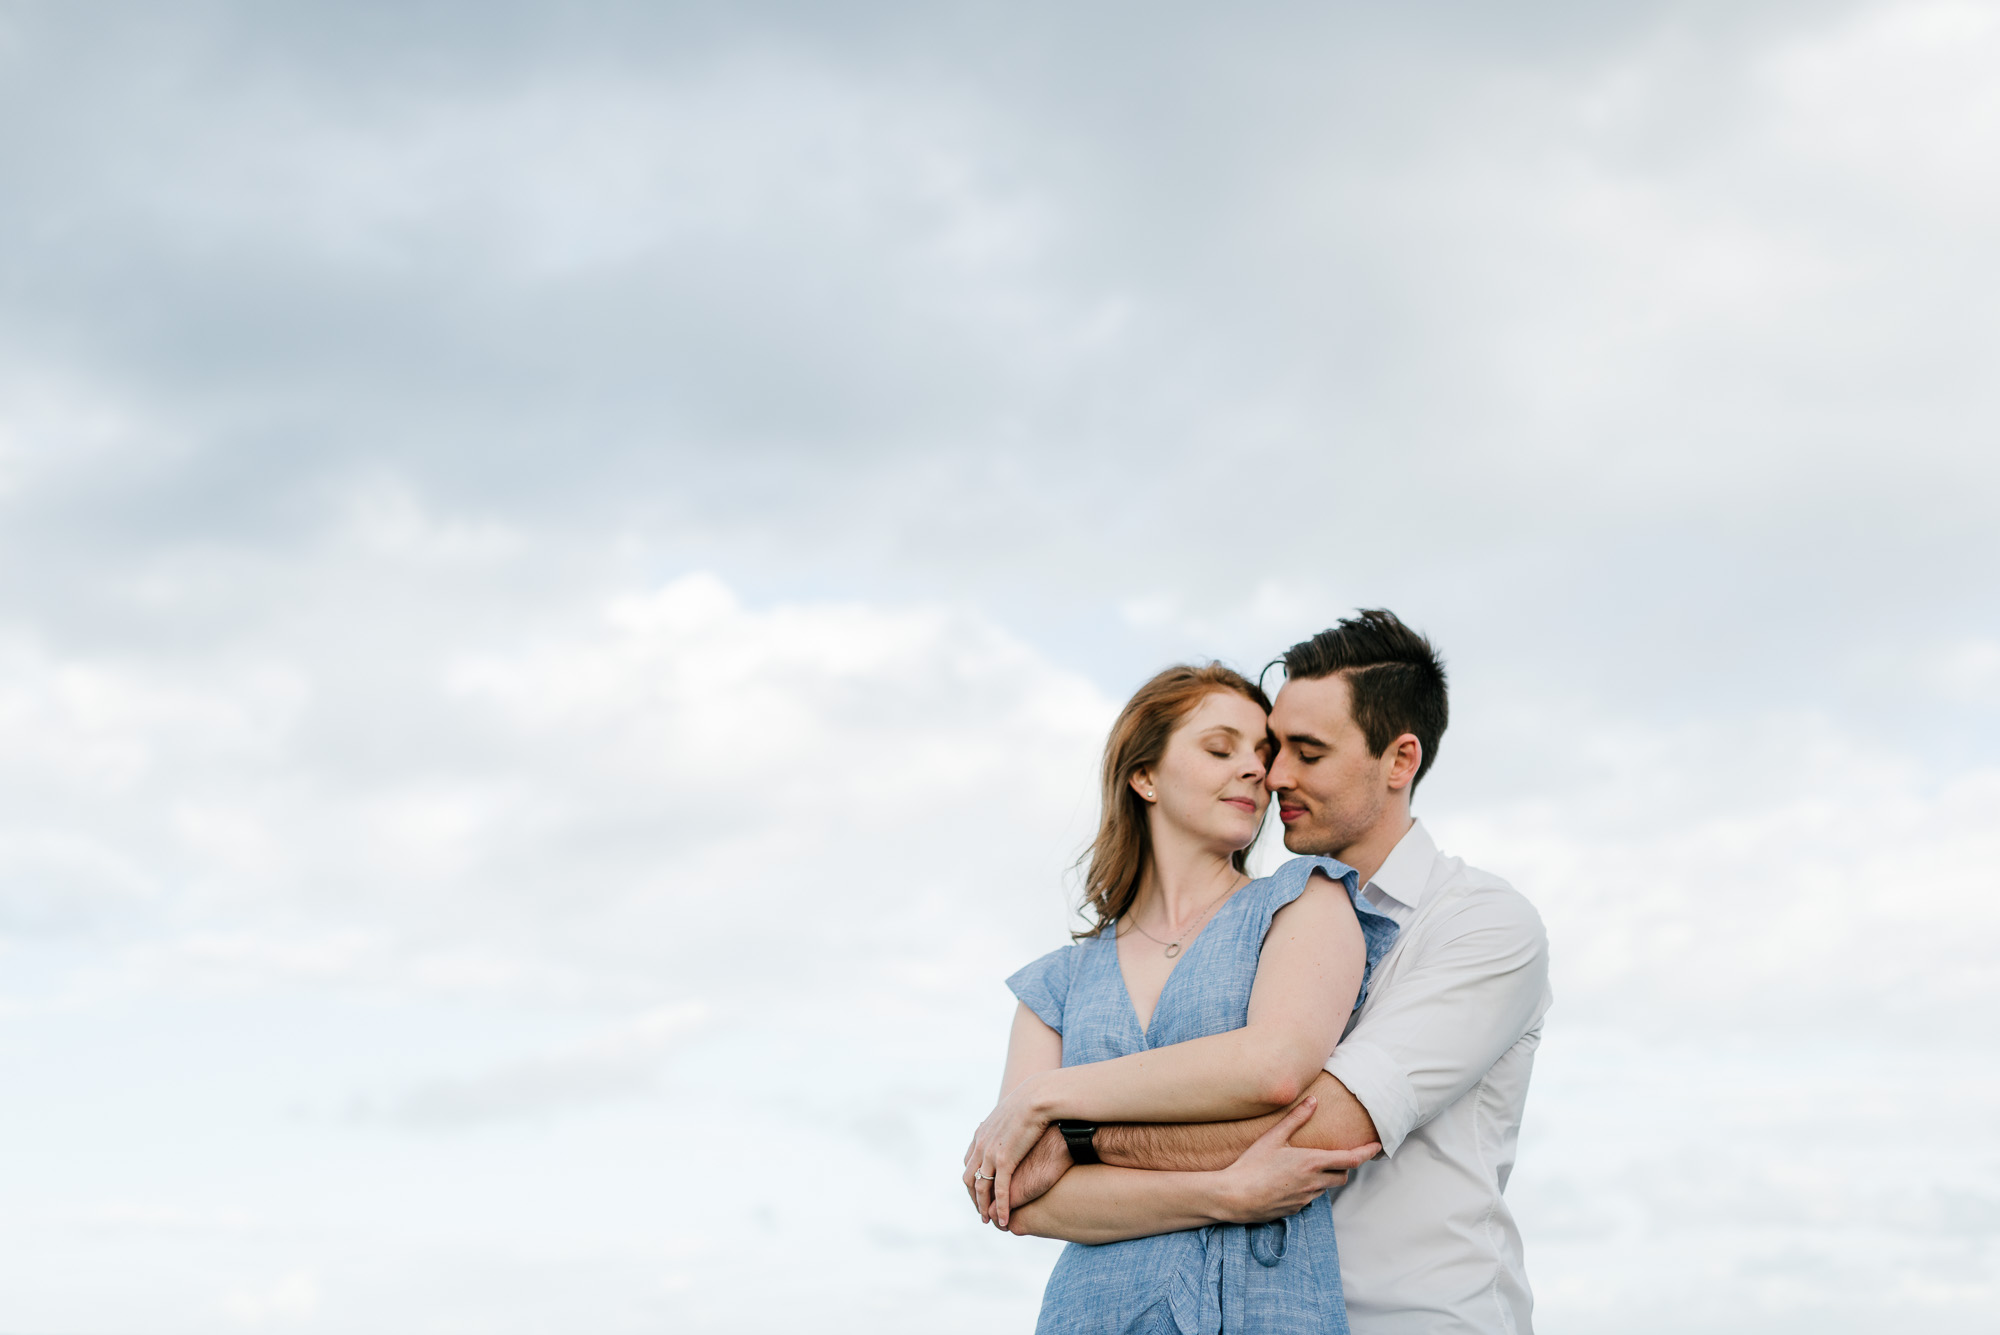 PhotographybyRenata_Proposal_Shoot_Watsons-Bay-Camp_Cove-216.JPG